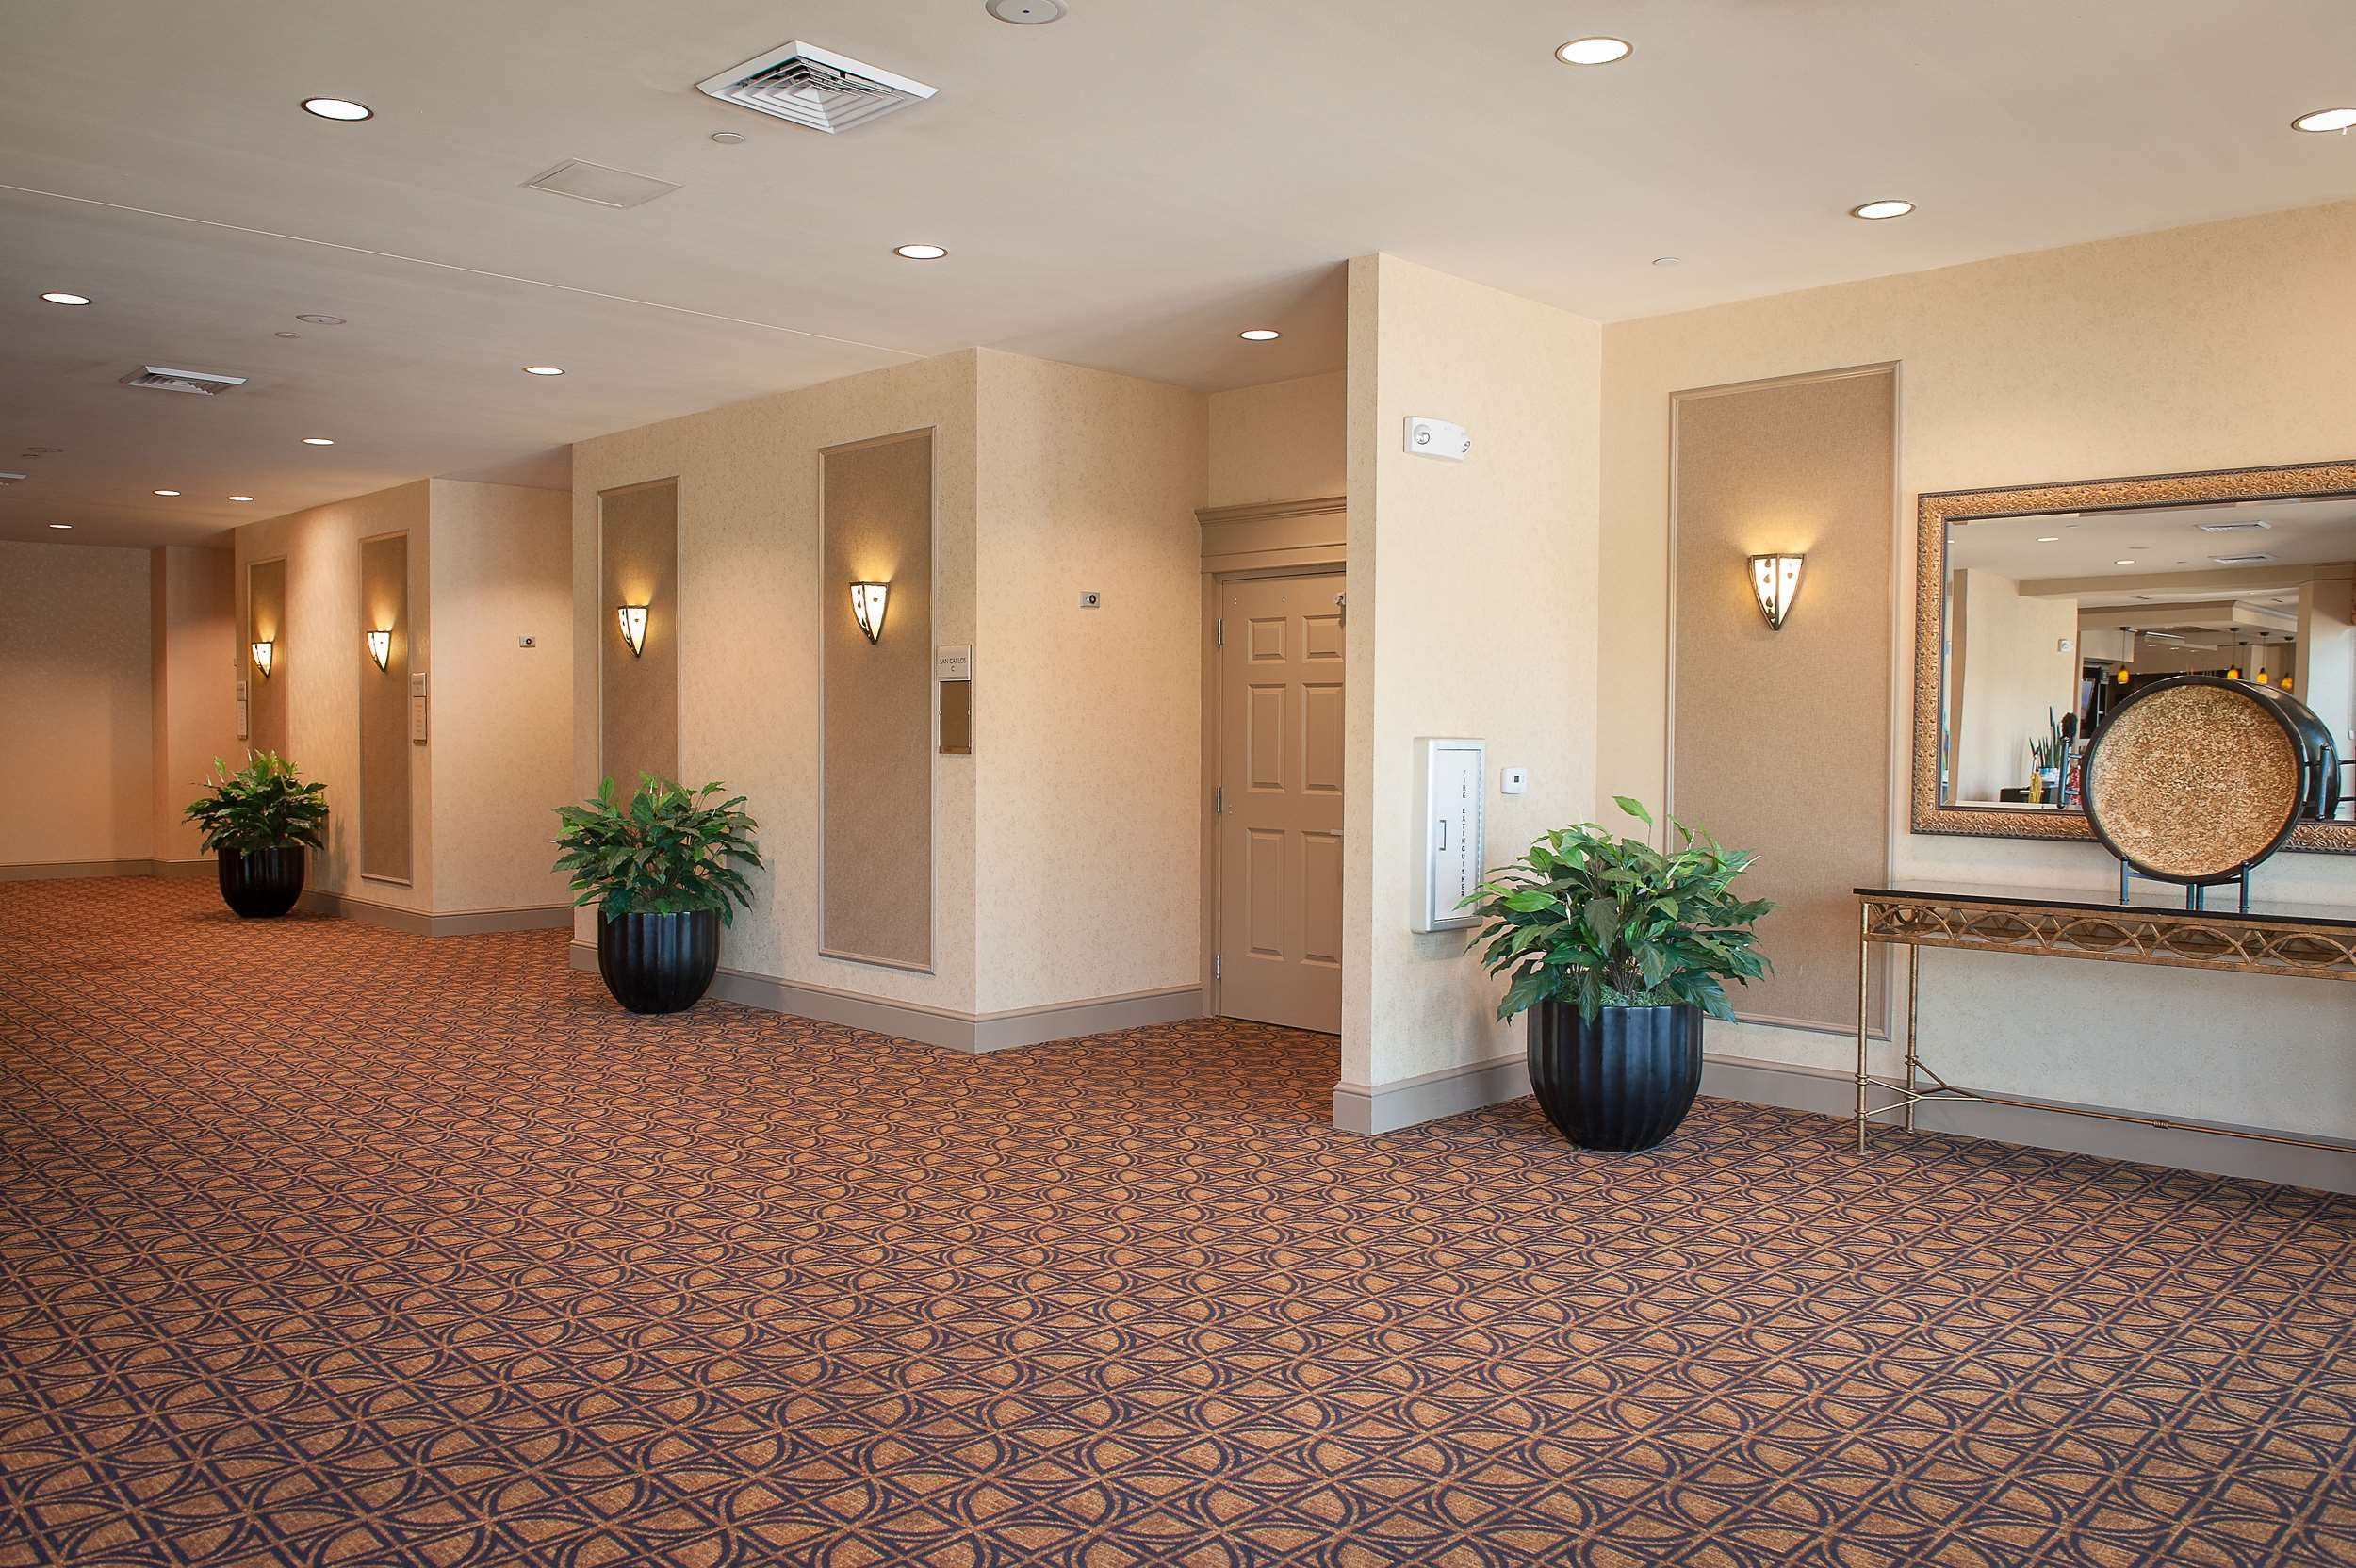 Hilton Garden Inn Pensacola Airport - Medical Center 1144 Airport ...